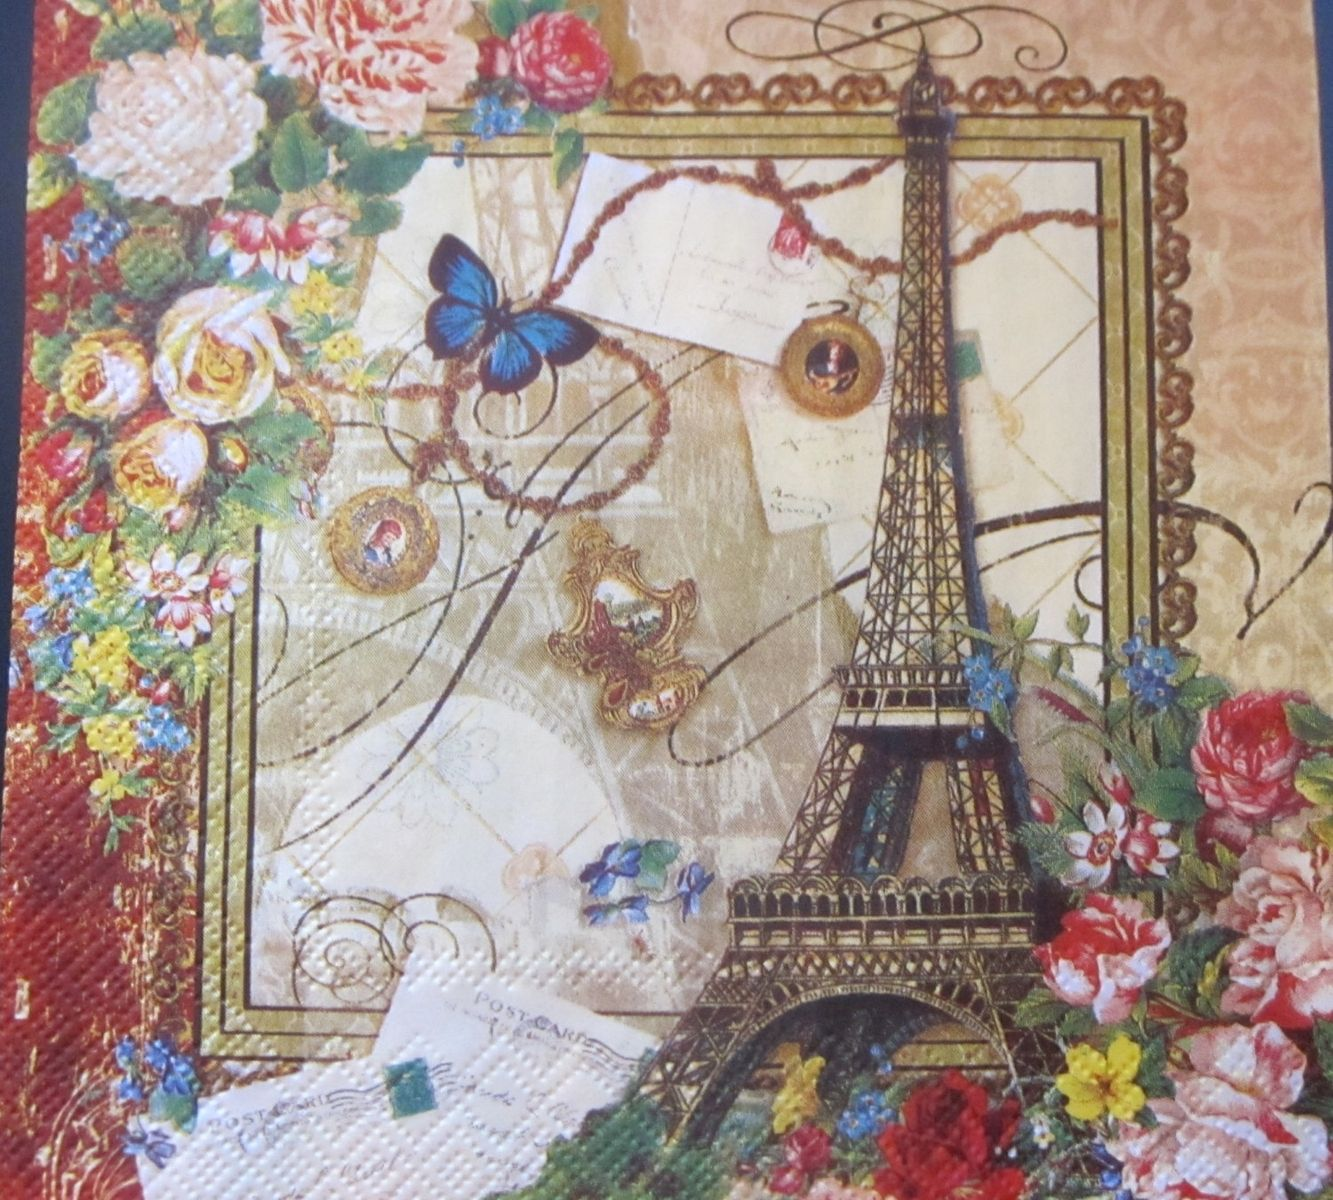 scrapbook paper collage on canvas